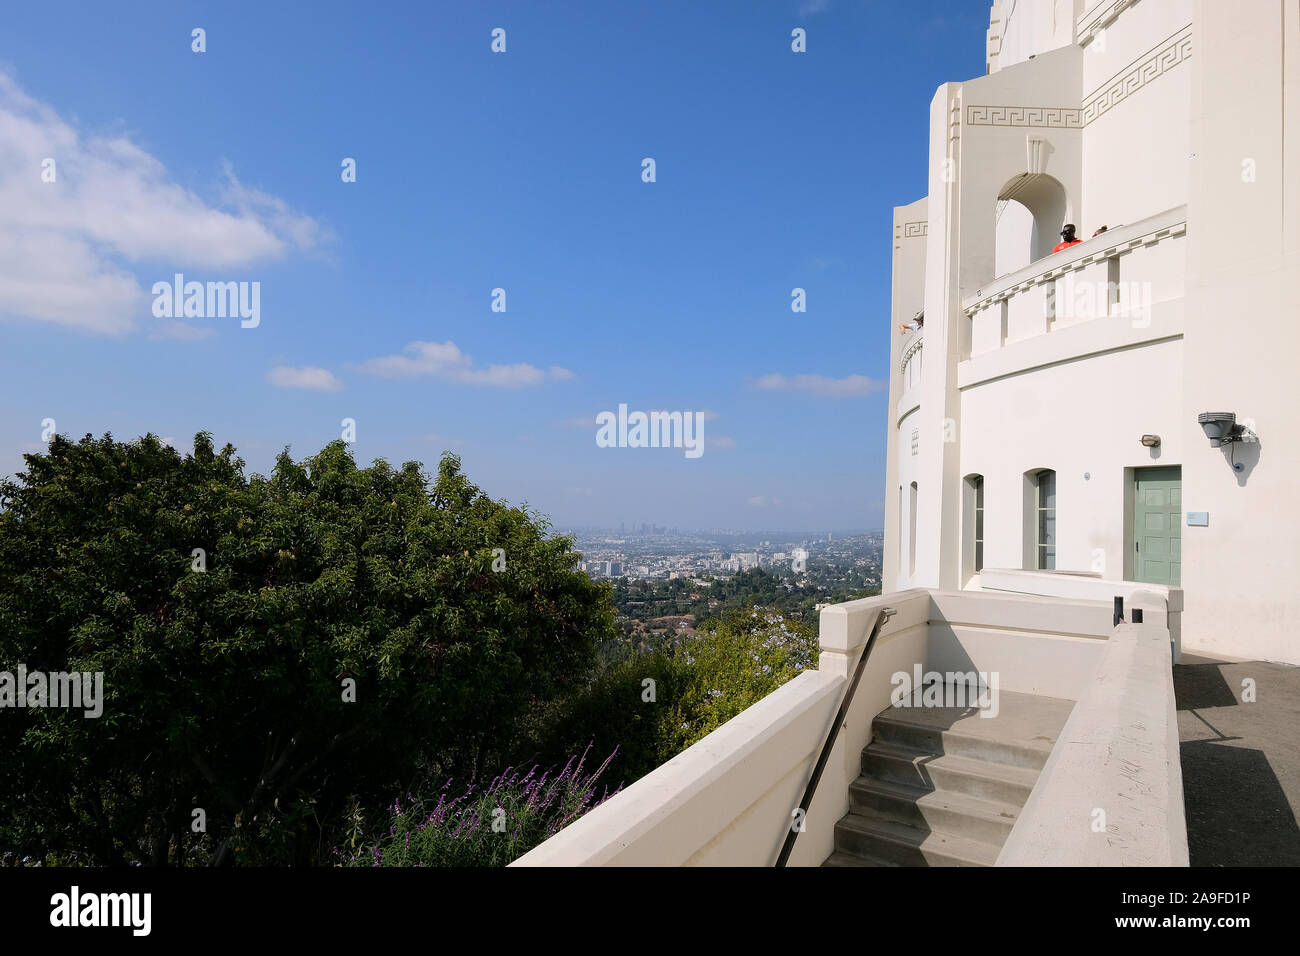 View from Griffith Park Observatory to Los Angeles, California, USA Stock Photo